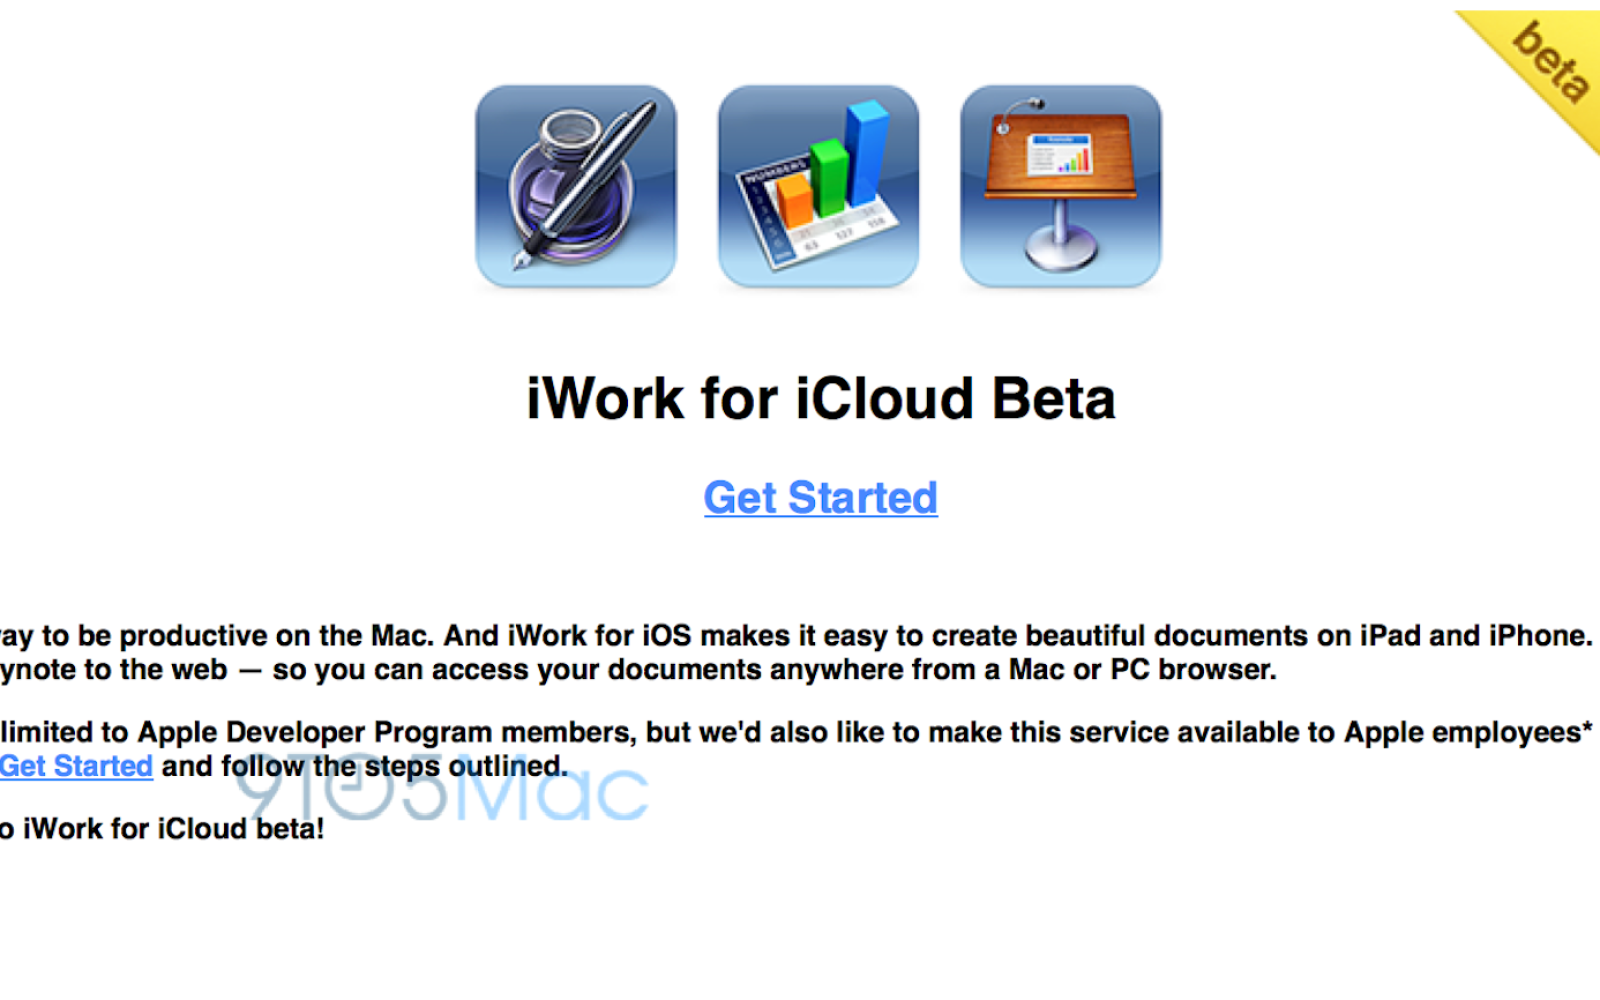 Apple expands iWork for iCloud beta testing to its employees